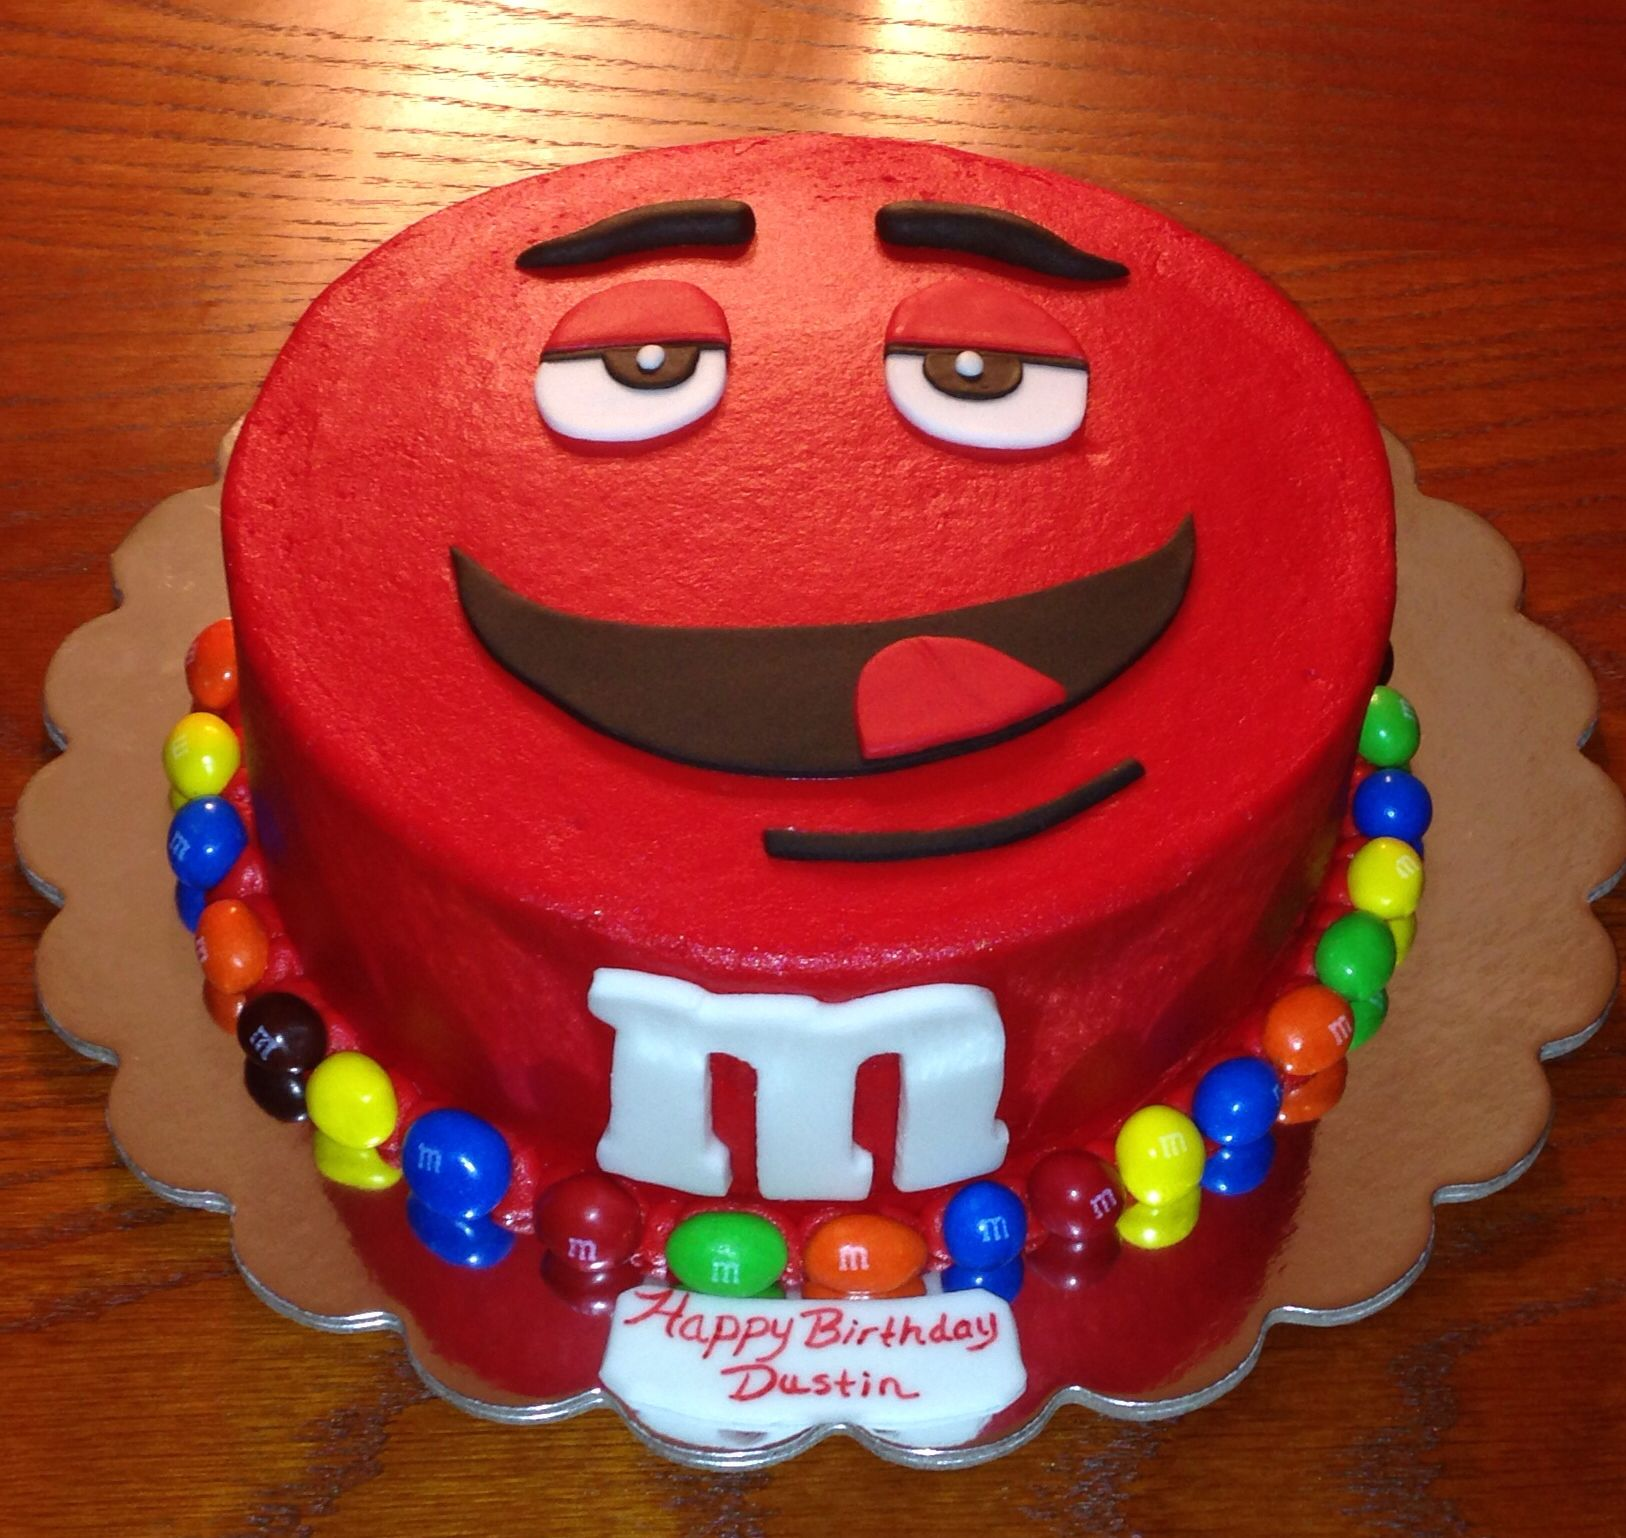 Marvelous Red Mm Birthday Cake With Images Red Birthday Cakes Cake Funny Birthday Cards Online Hendilapandamsfinfo